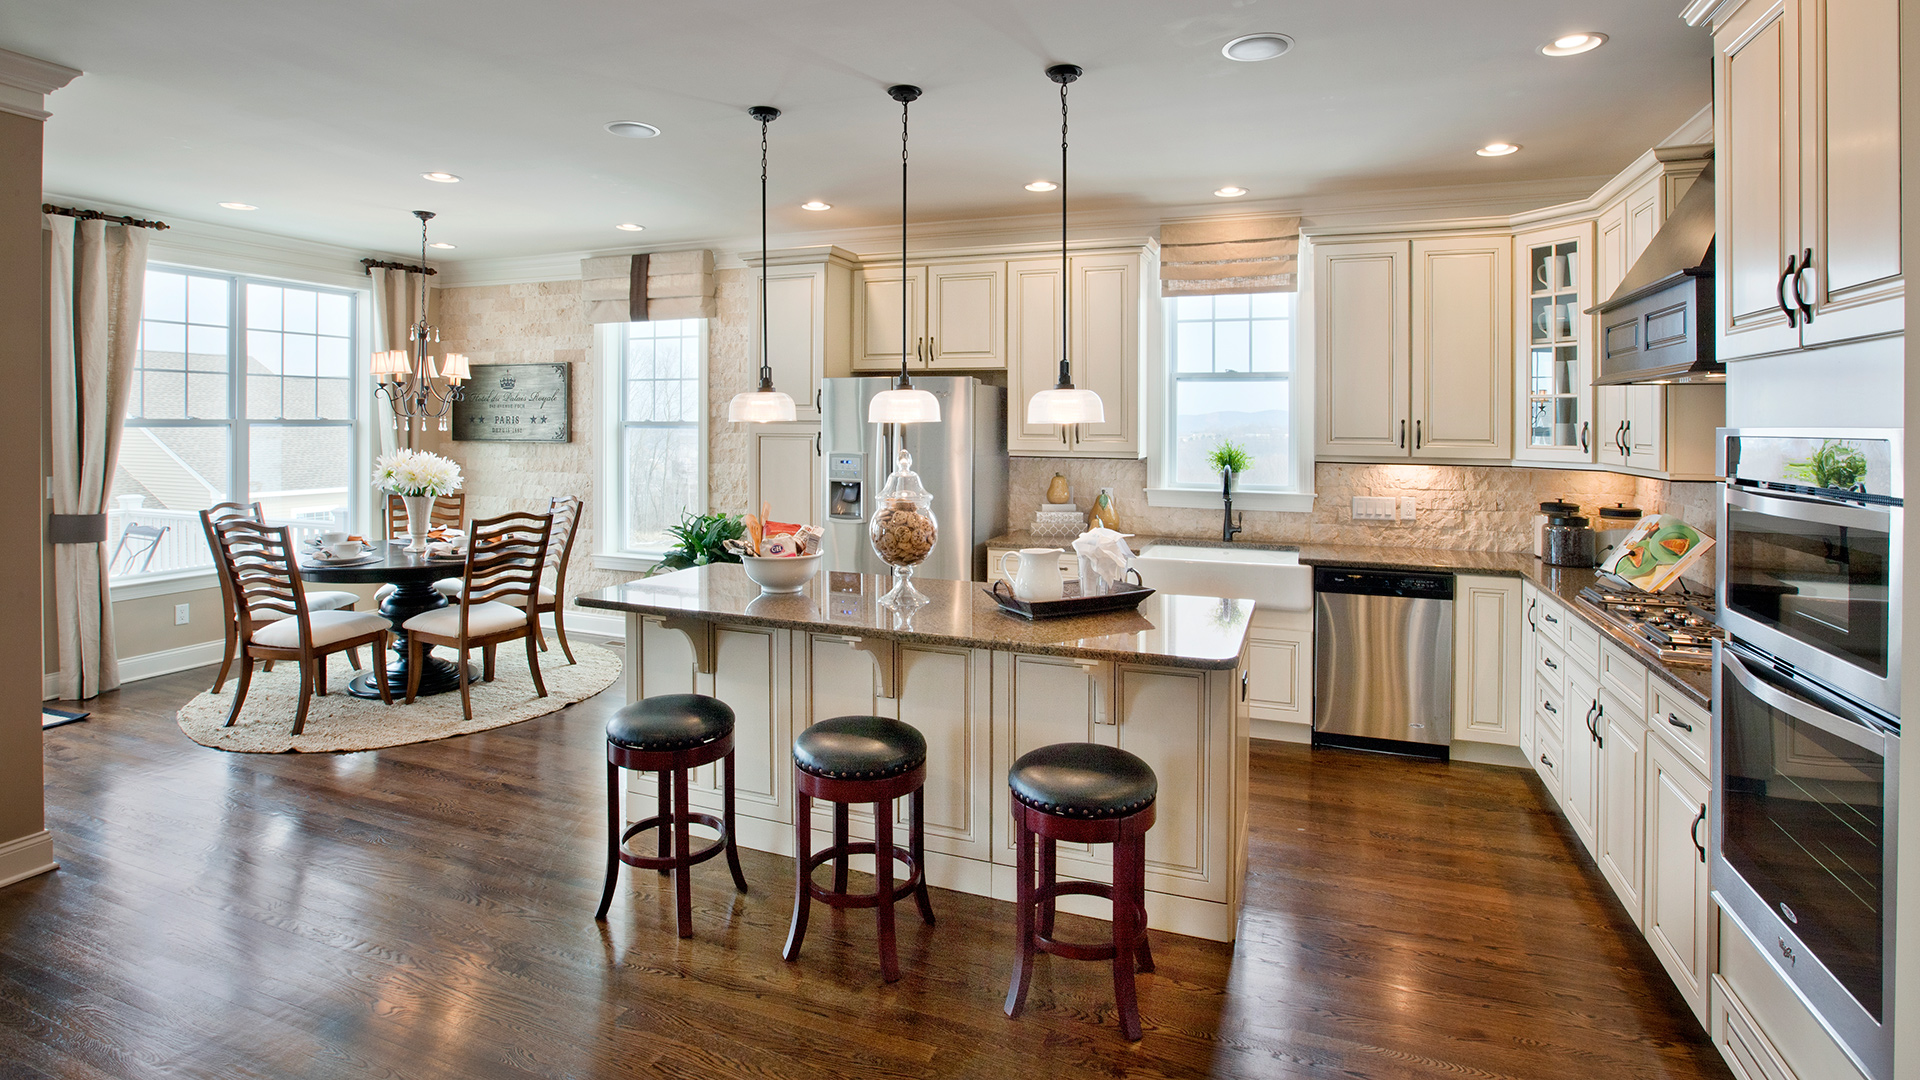 Florida Kitchen Design Gallery Bathroom Inspiration Gallery Toll Brothers Luxury Homes